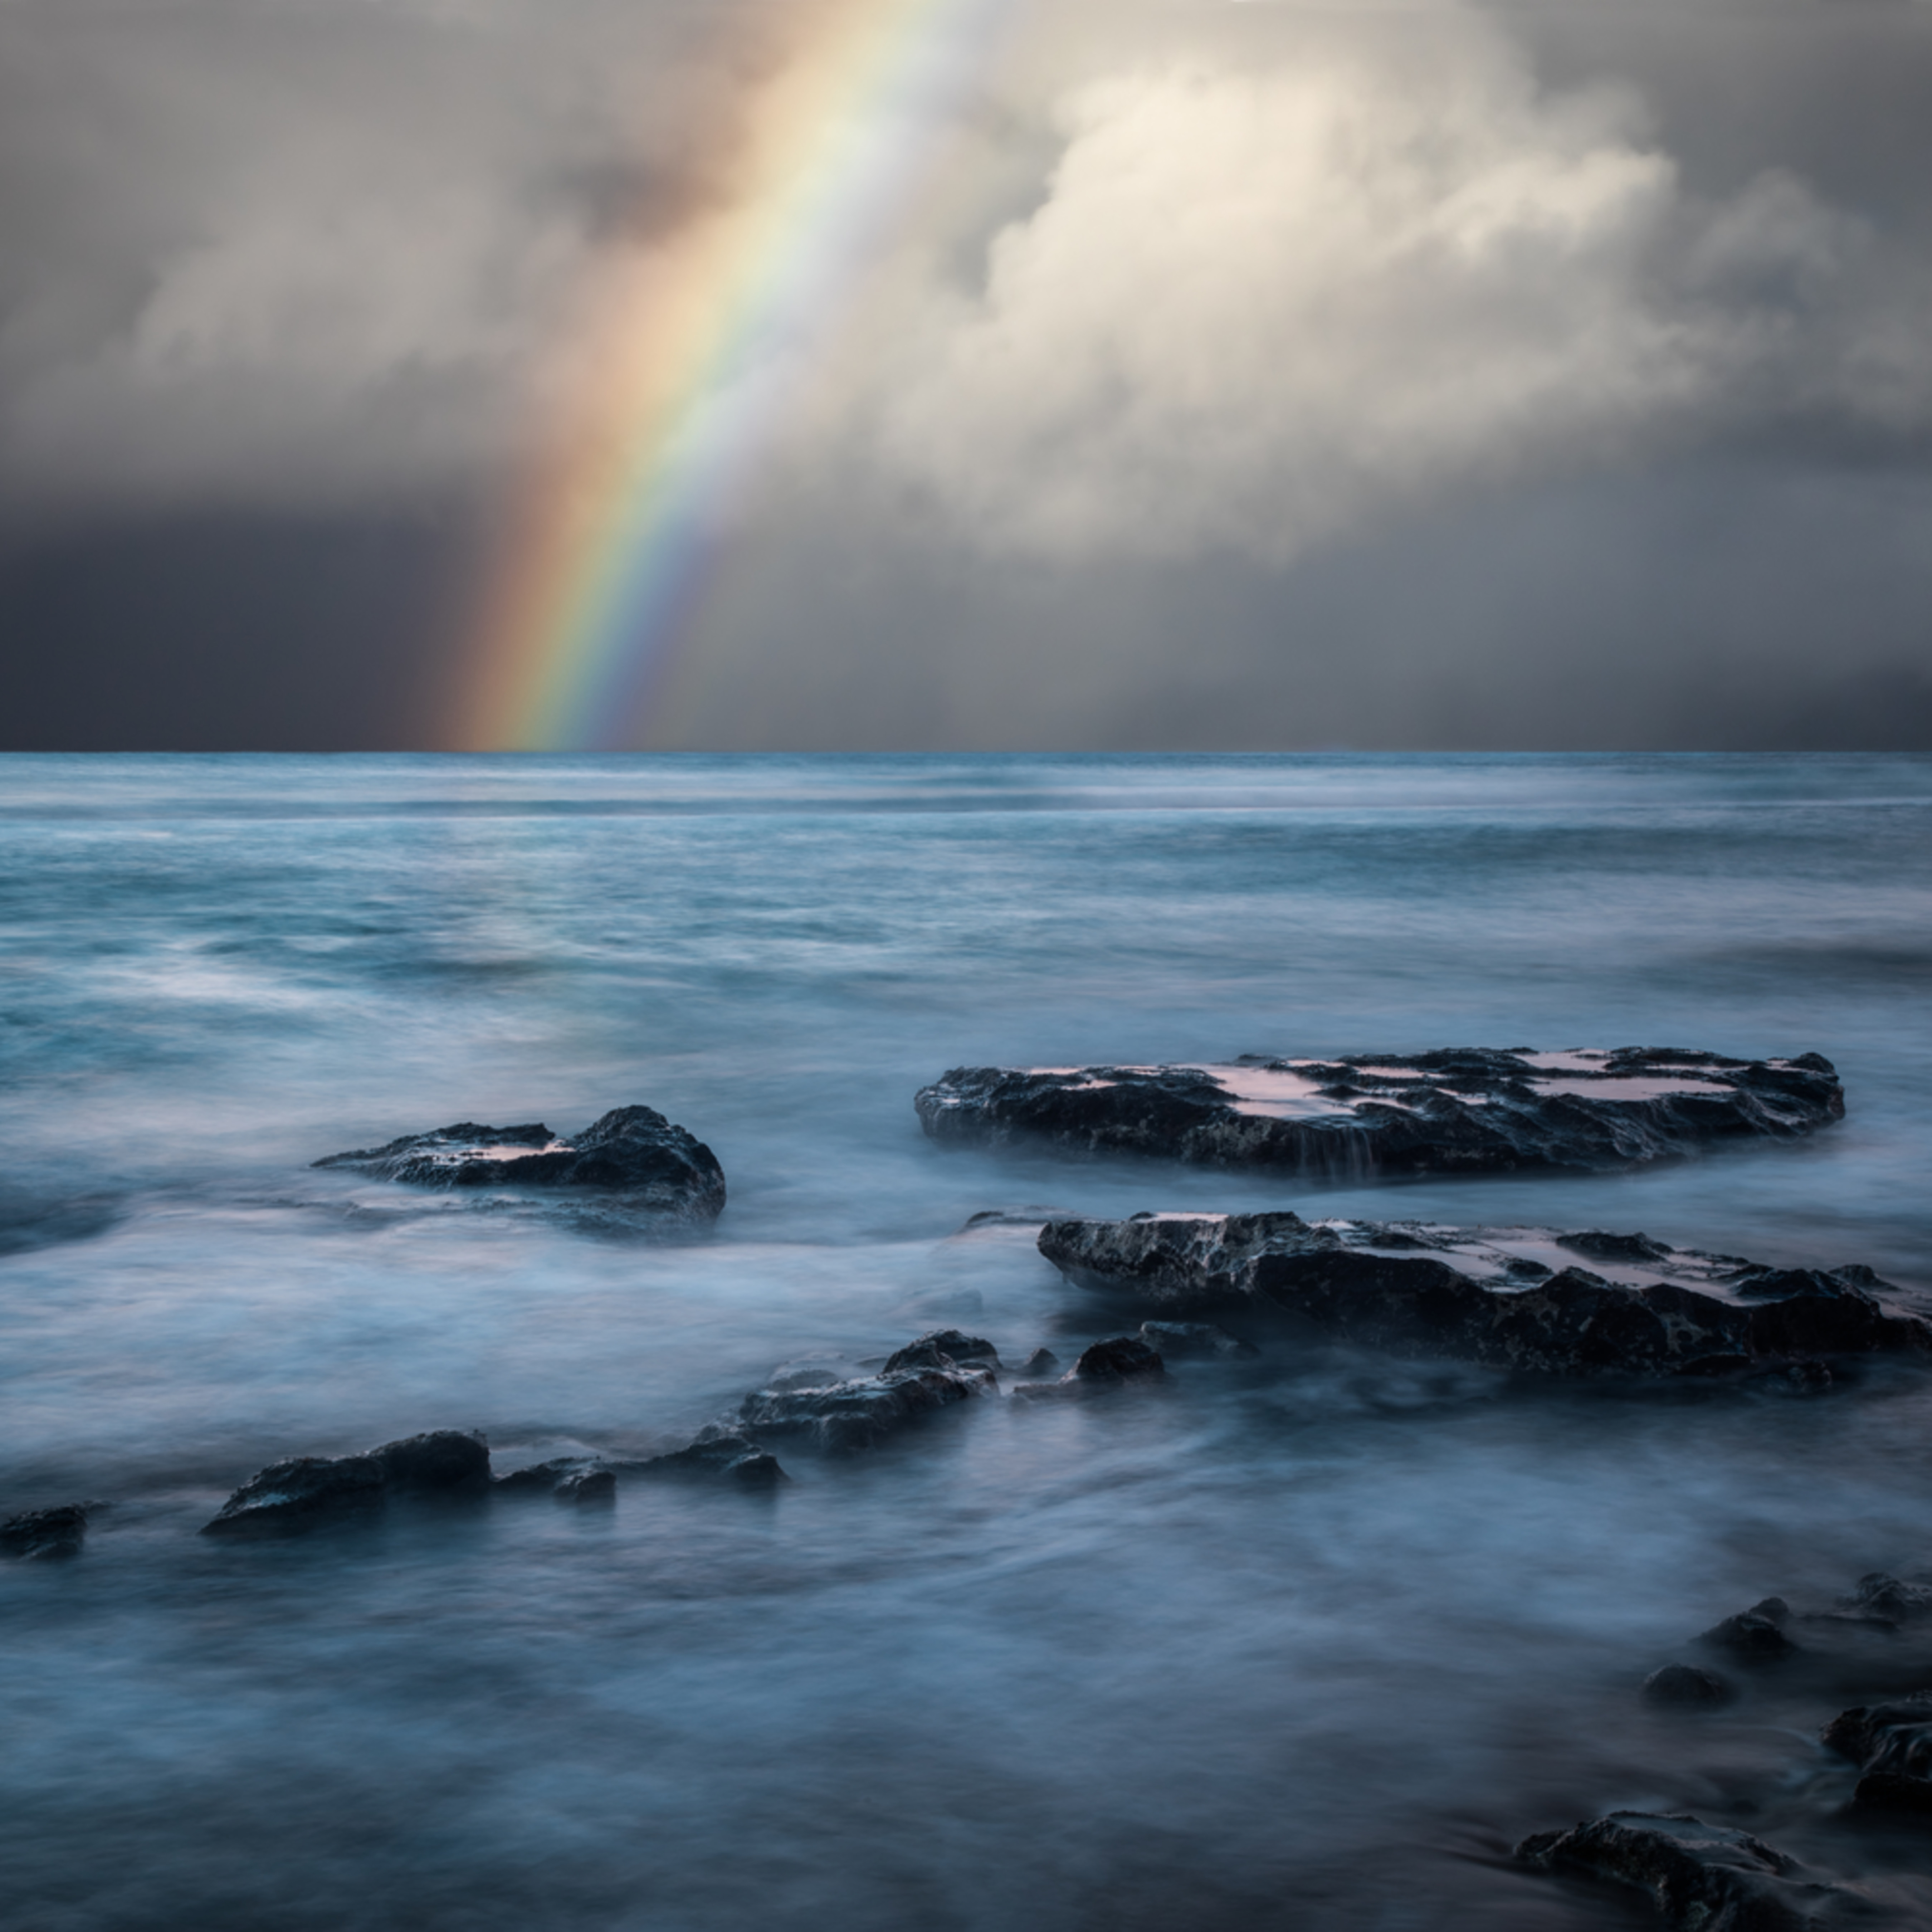 Rainbow in maui m1oe5t